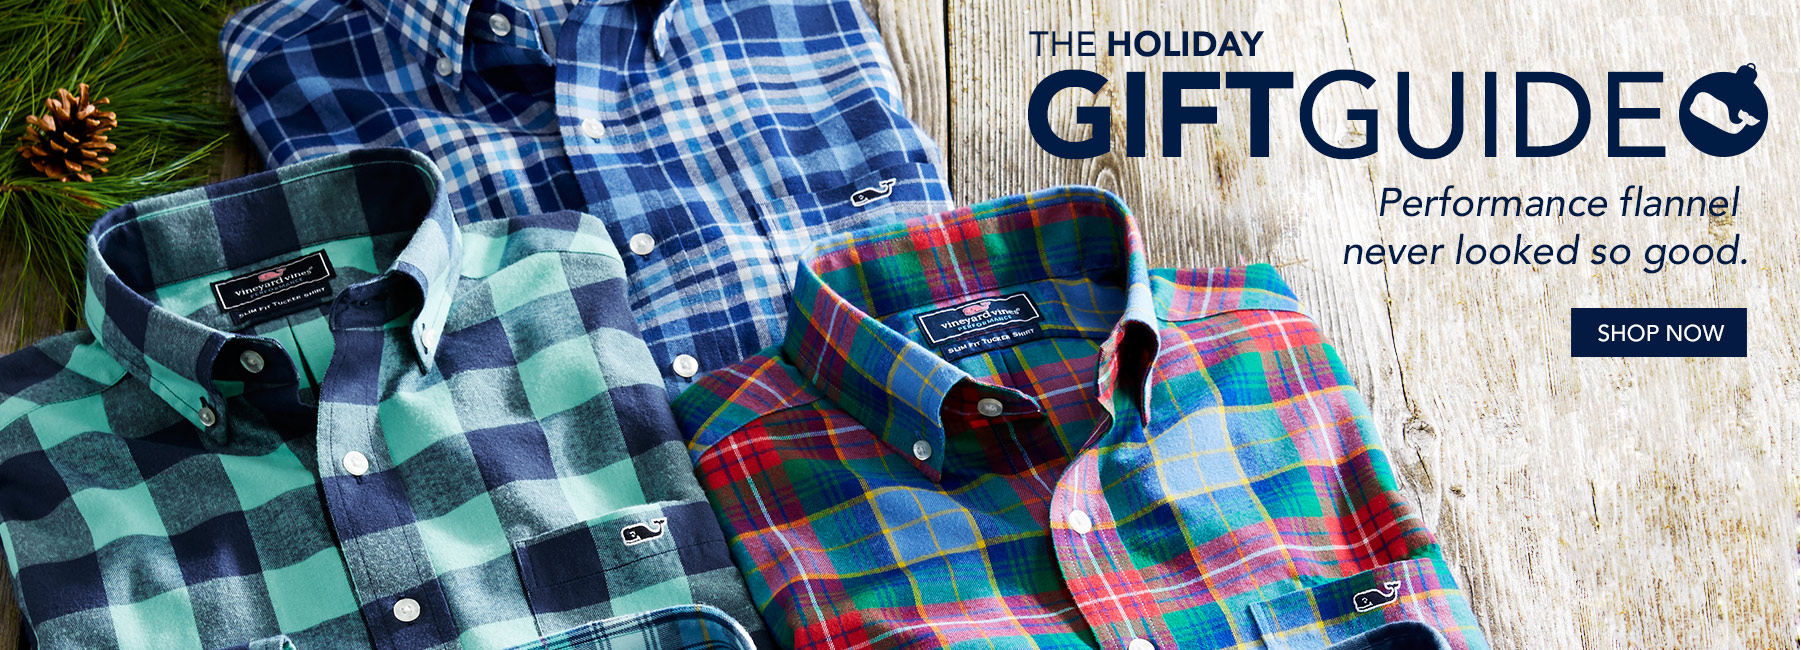 The holiday gift guide. Performance flannel never looked so good. Shop now.